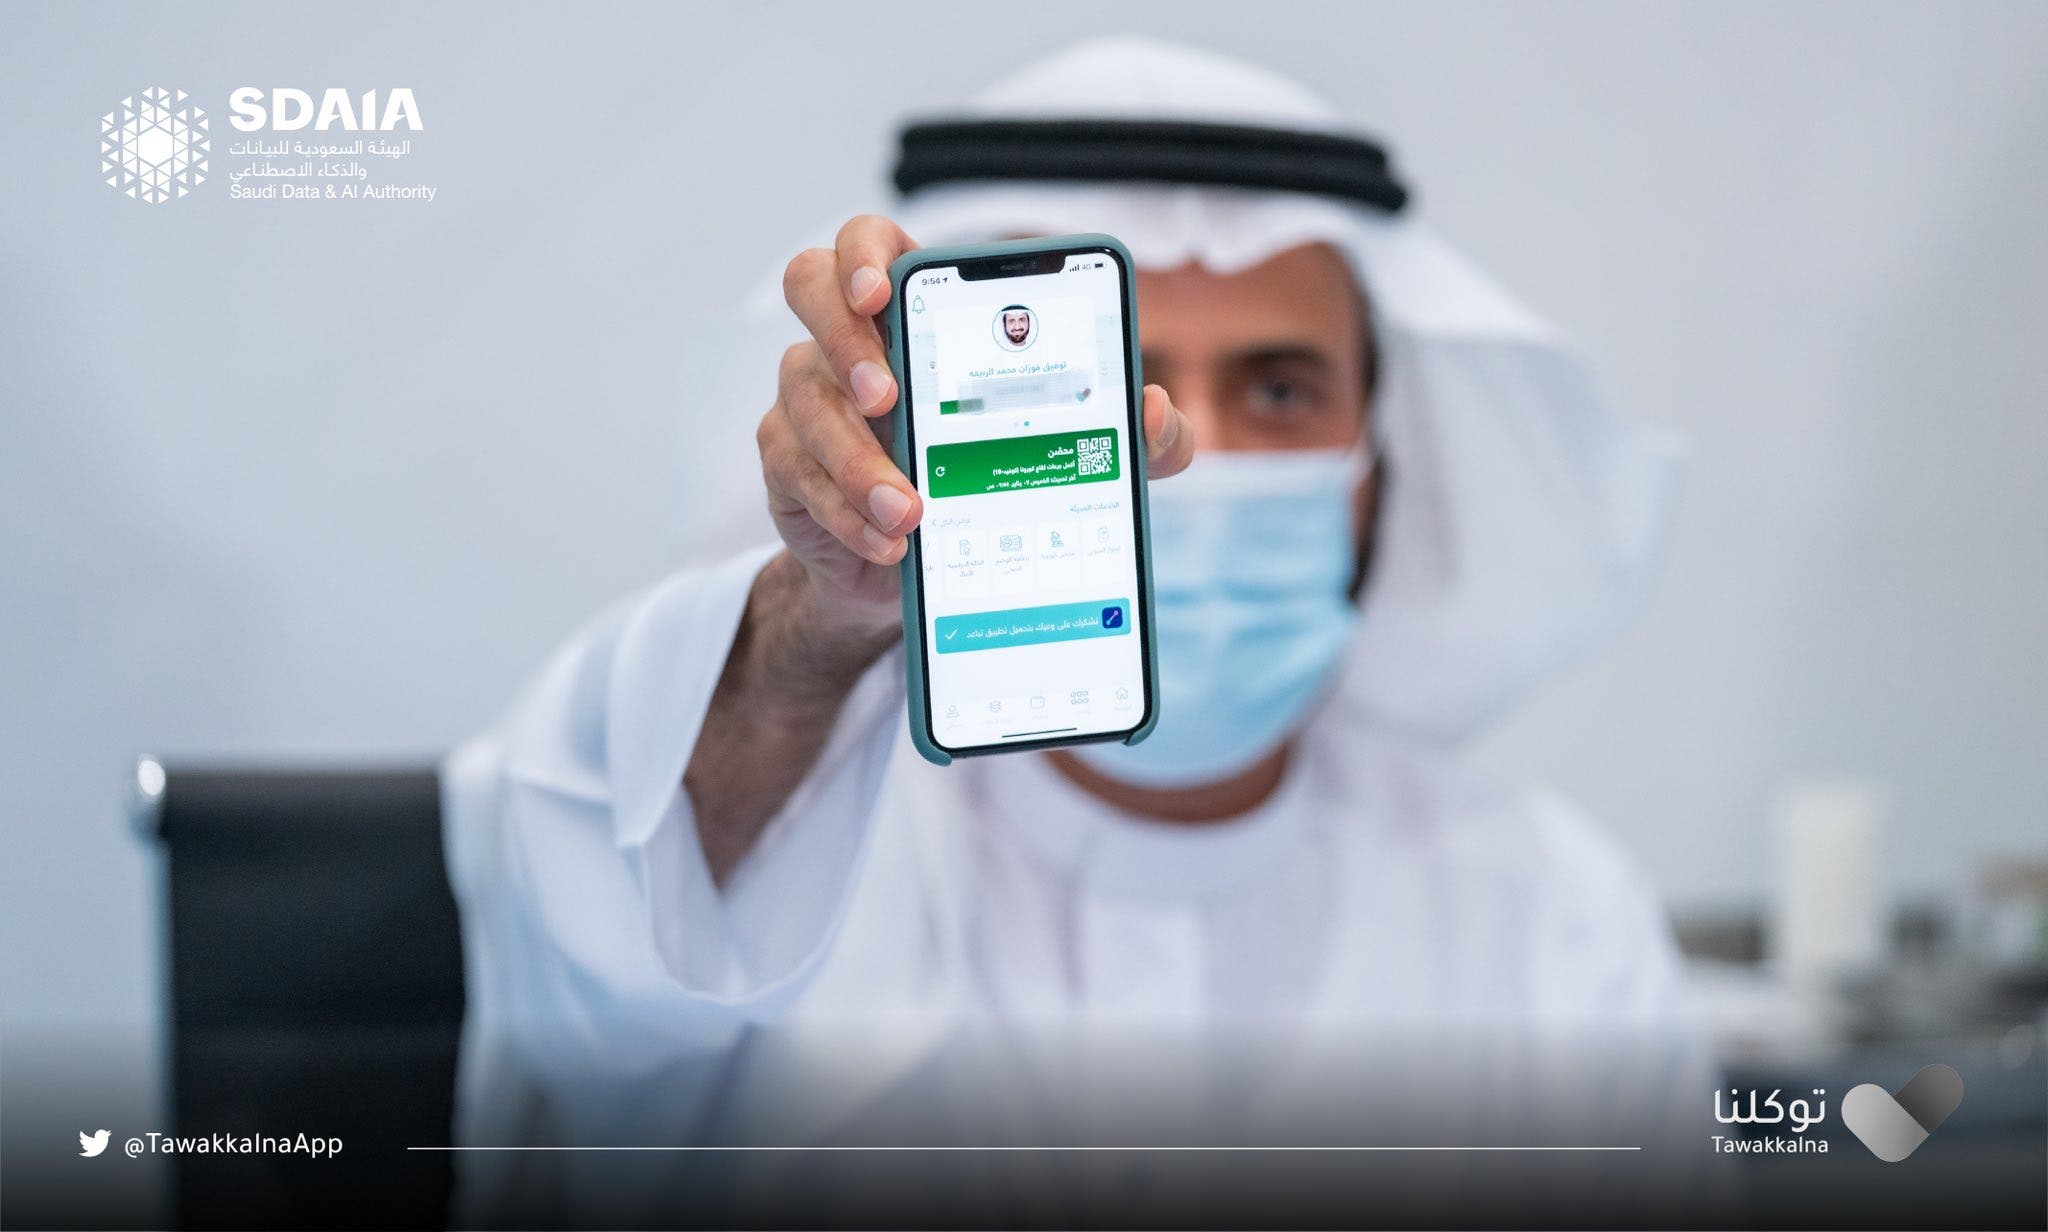 "Saudi Arabia Minister of Health, Dr. Tawfiq al-Rabiah, had received his second dose of the COVID-19 vaccine and showcased his ""Health Passport"" on the ""Tawakkalna"" app. (Via @TawakkalnaApp Twitter)"